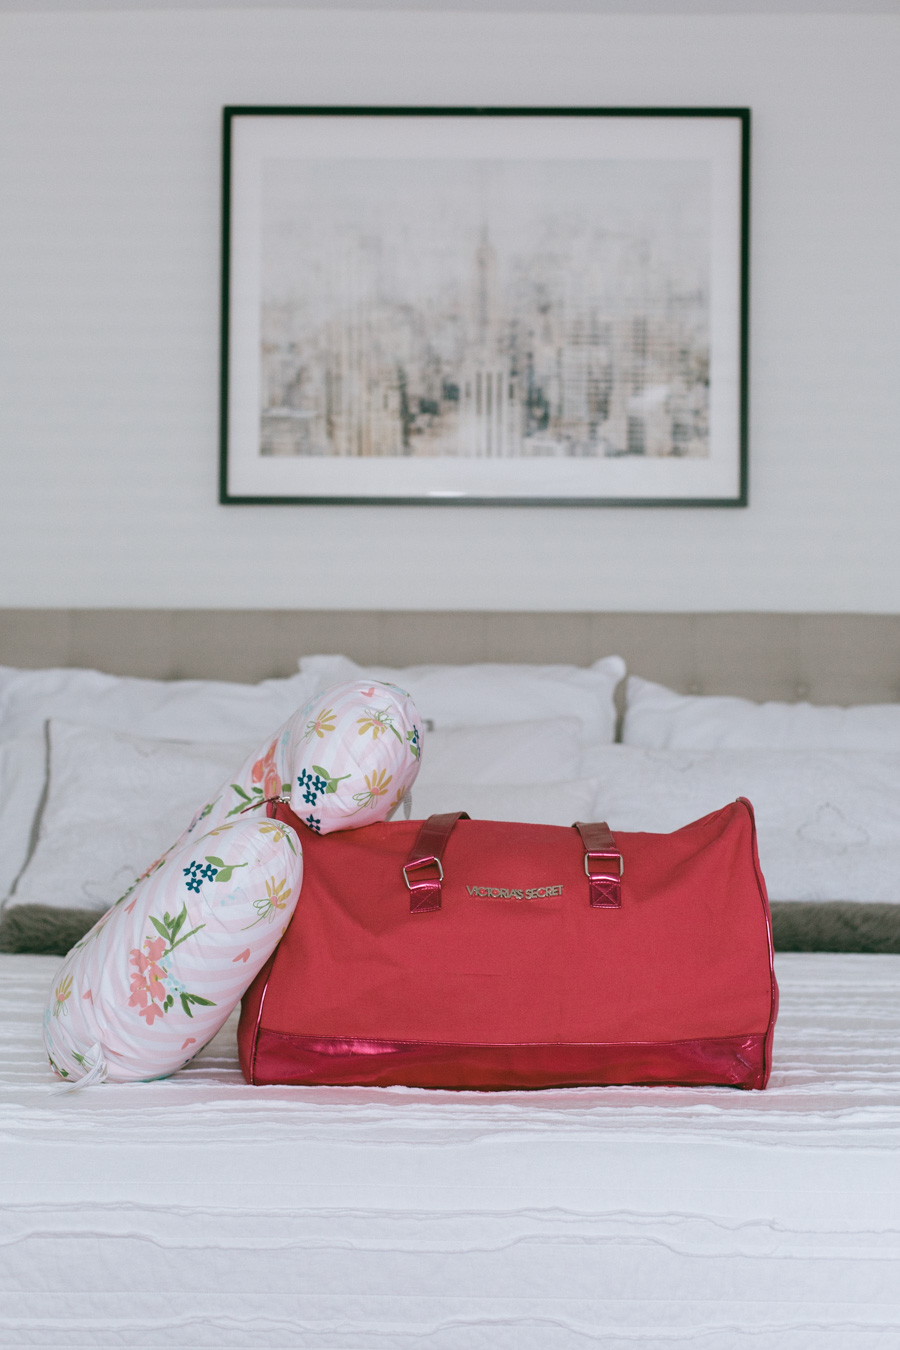 What I'm Packing In My Hospital Bag | Daily Craving Blog | Houston Blog